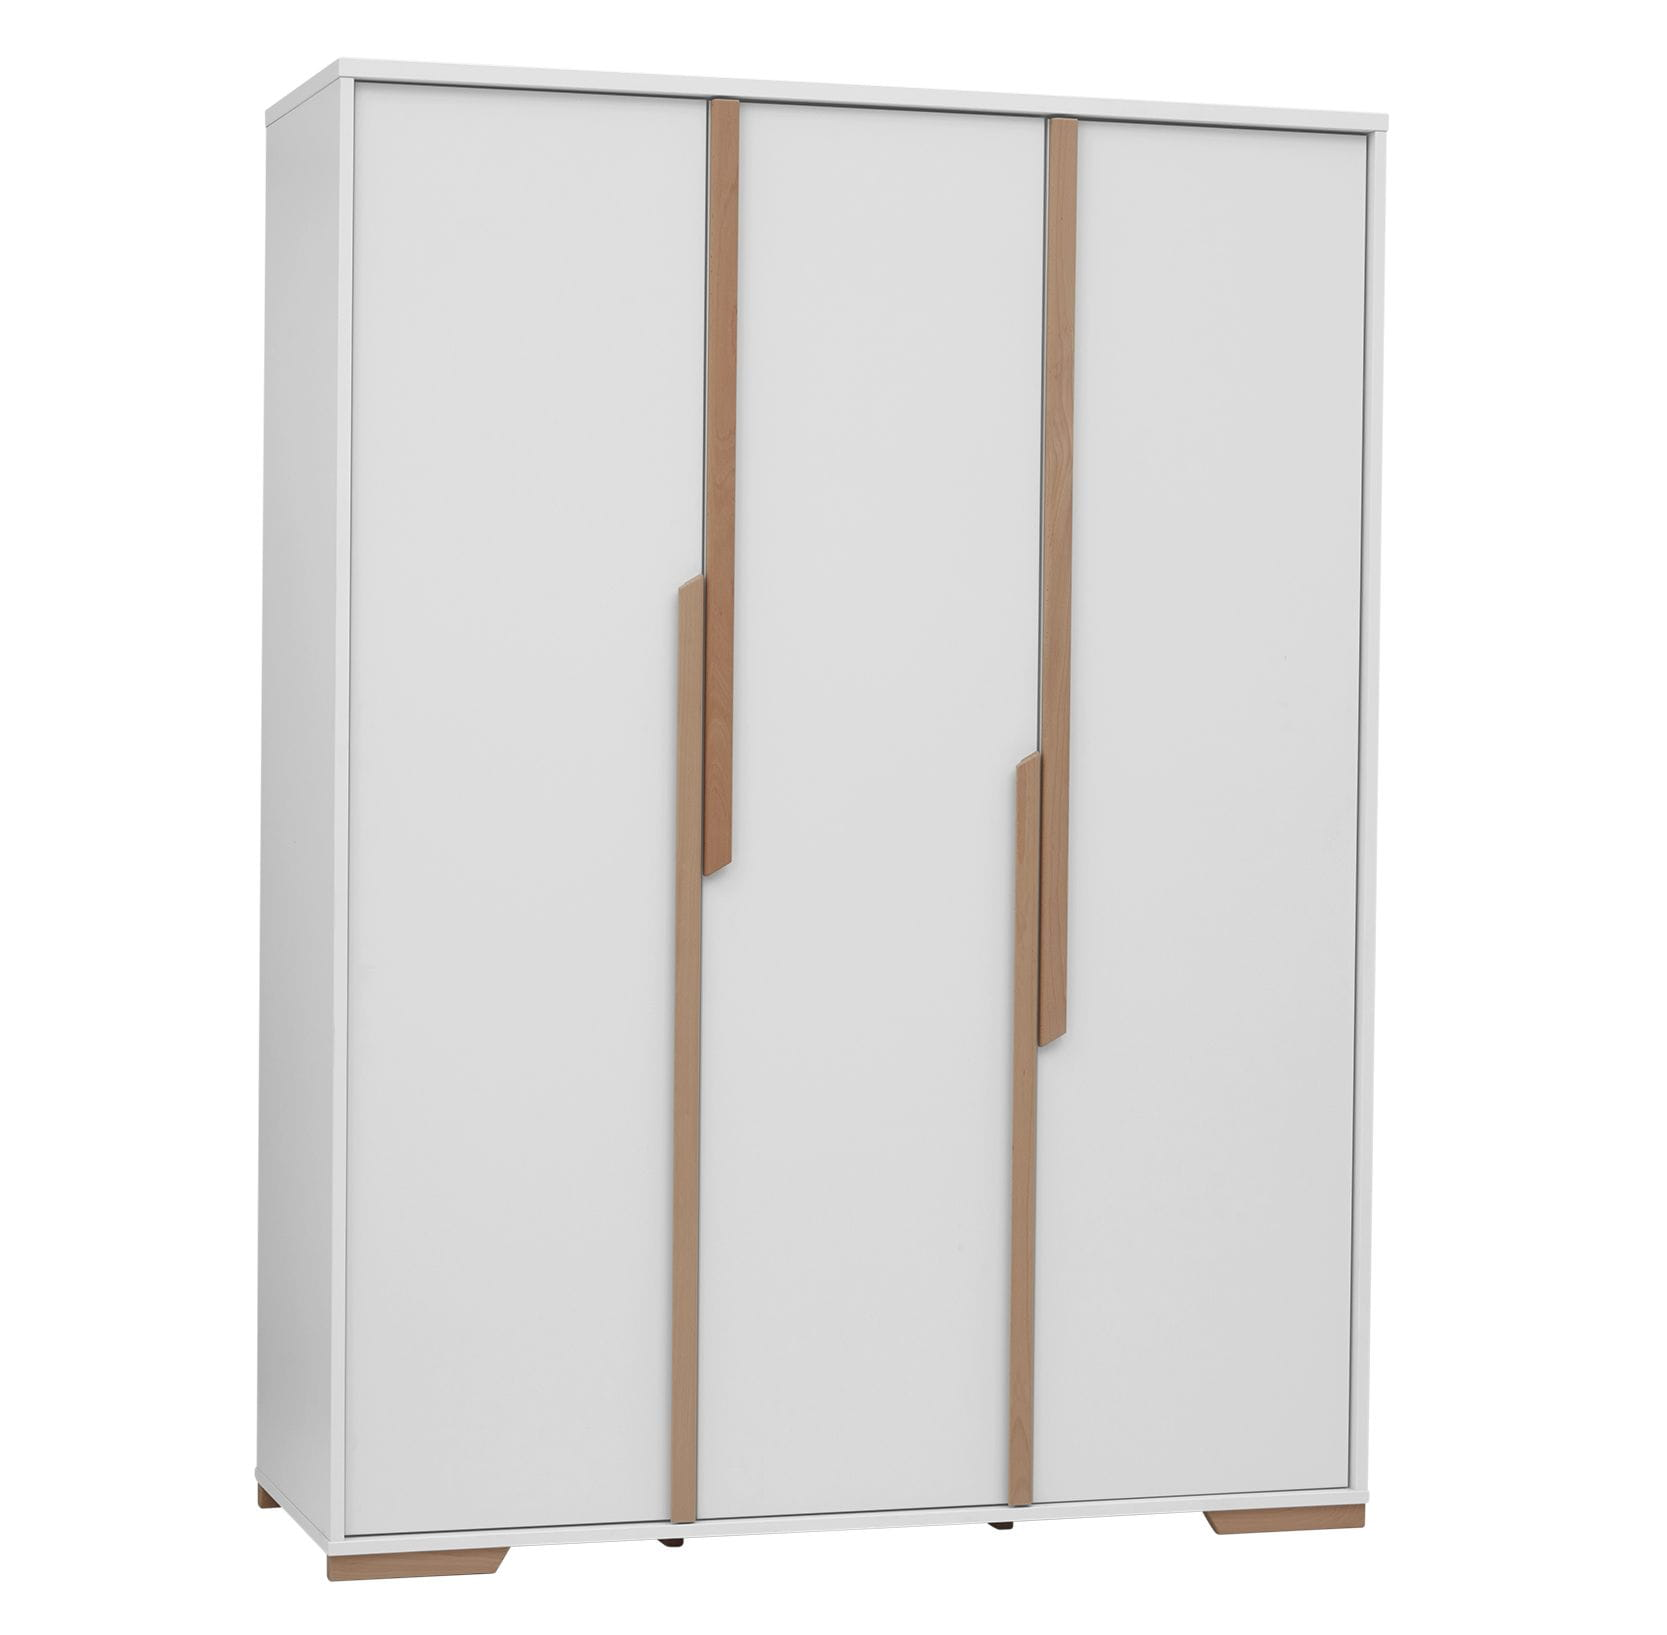 Snap_3door wardrobe_white_1.jpg